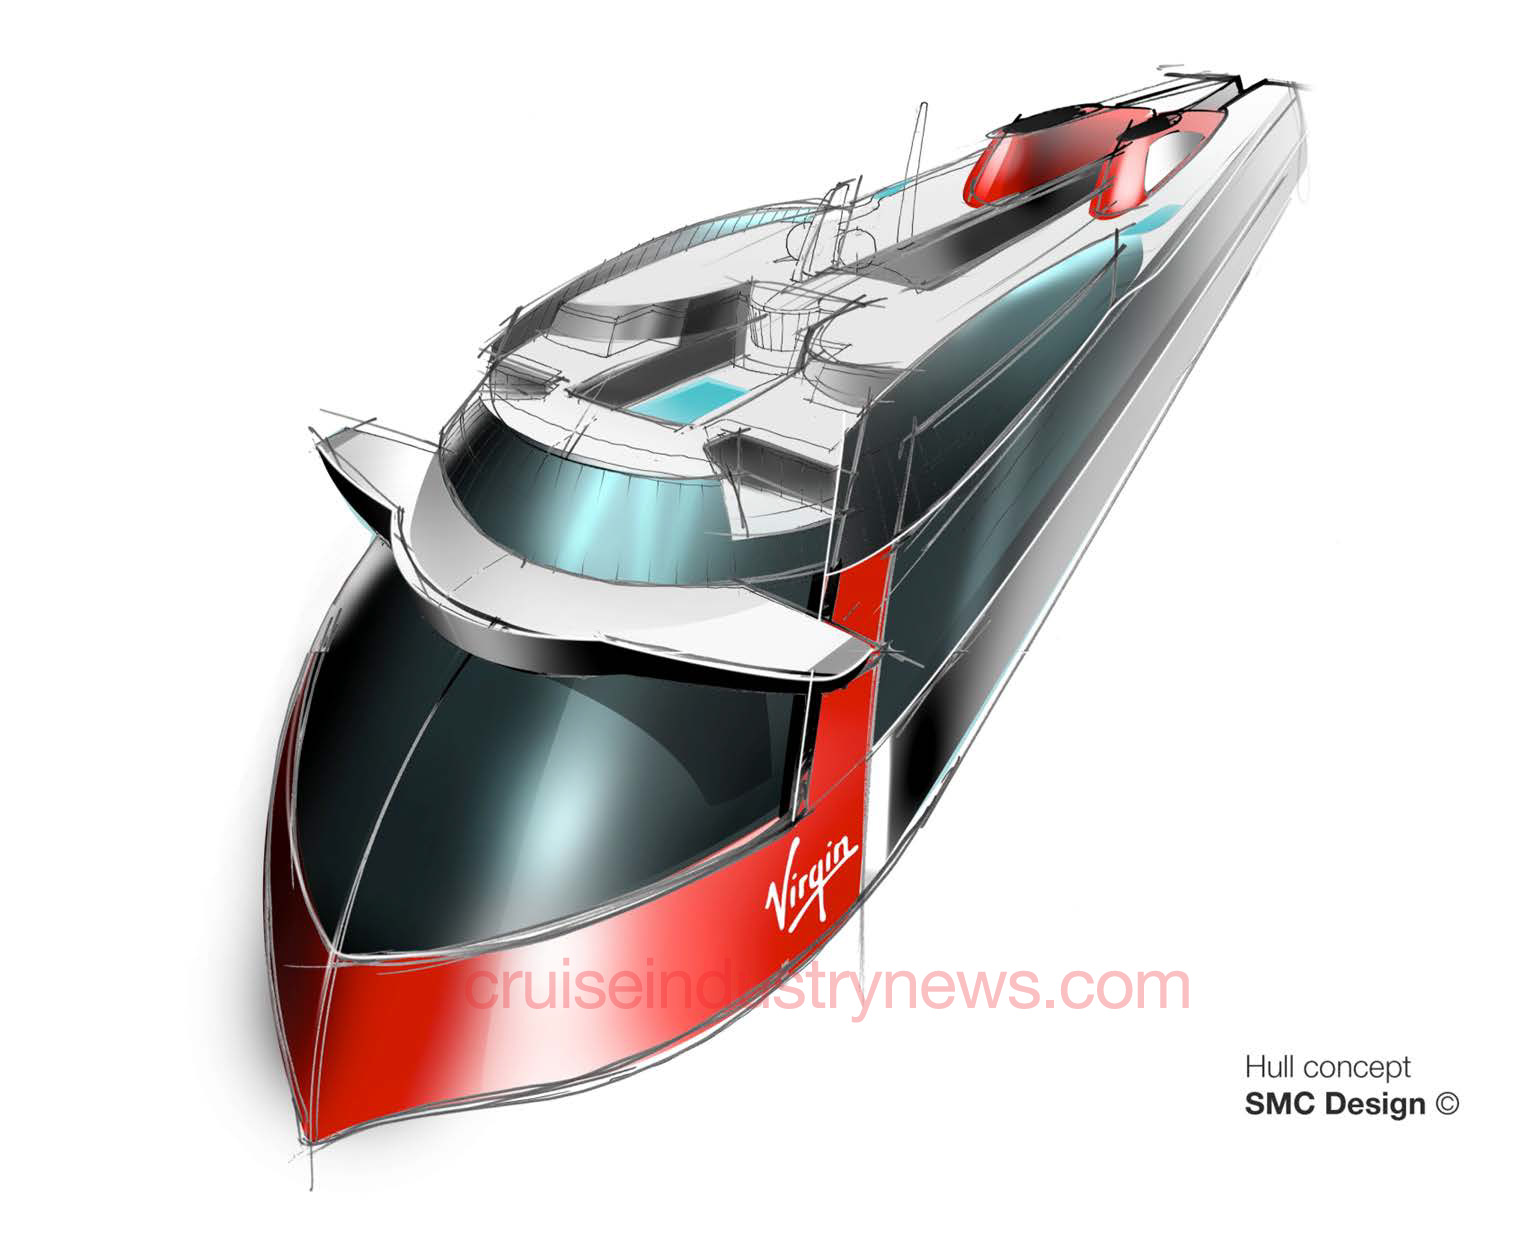 Virgin Cruises Ship Renderings And Details Shown In